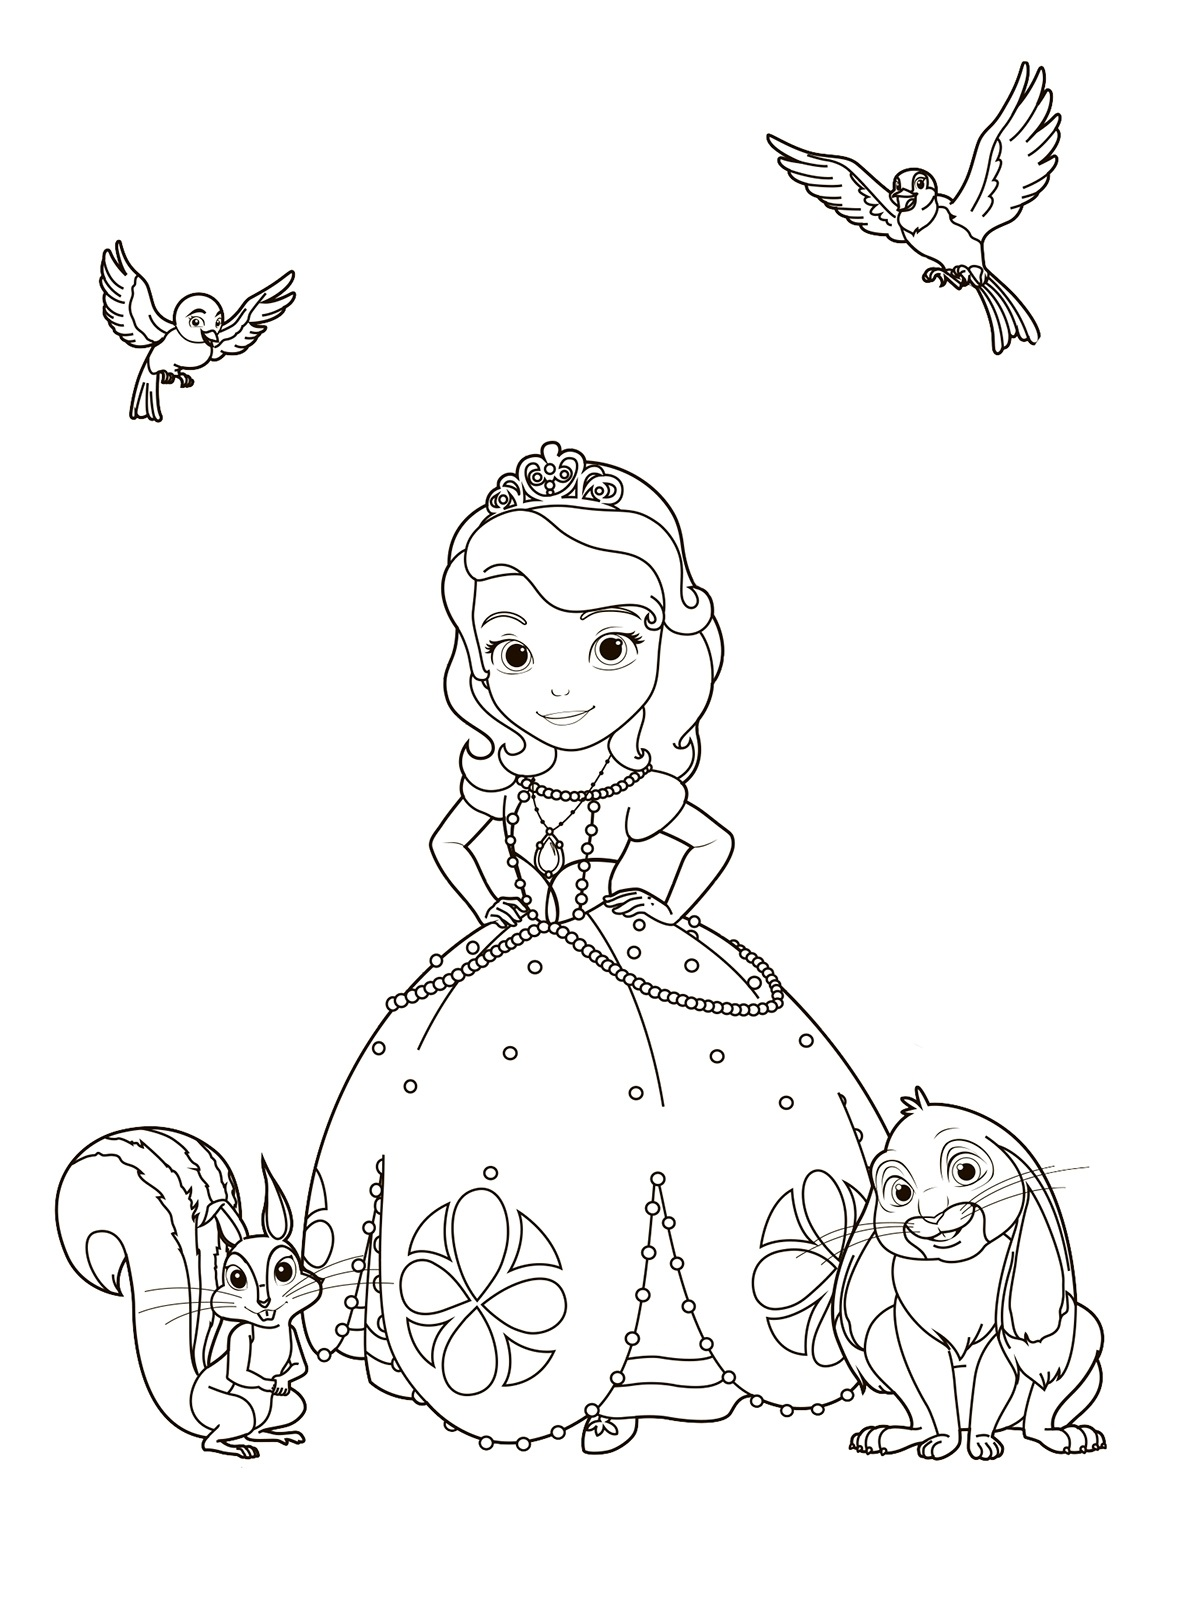 Sofia the First coloring pages for girls to print for free